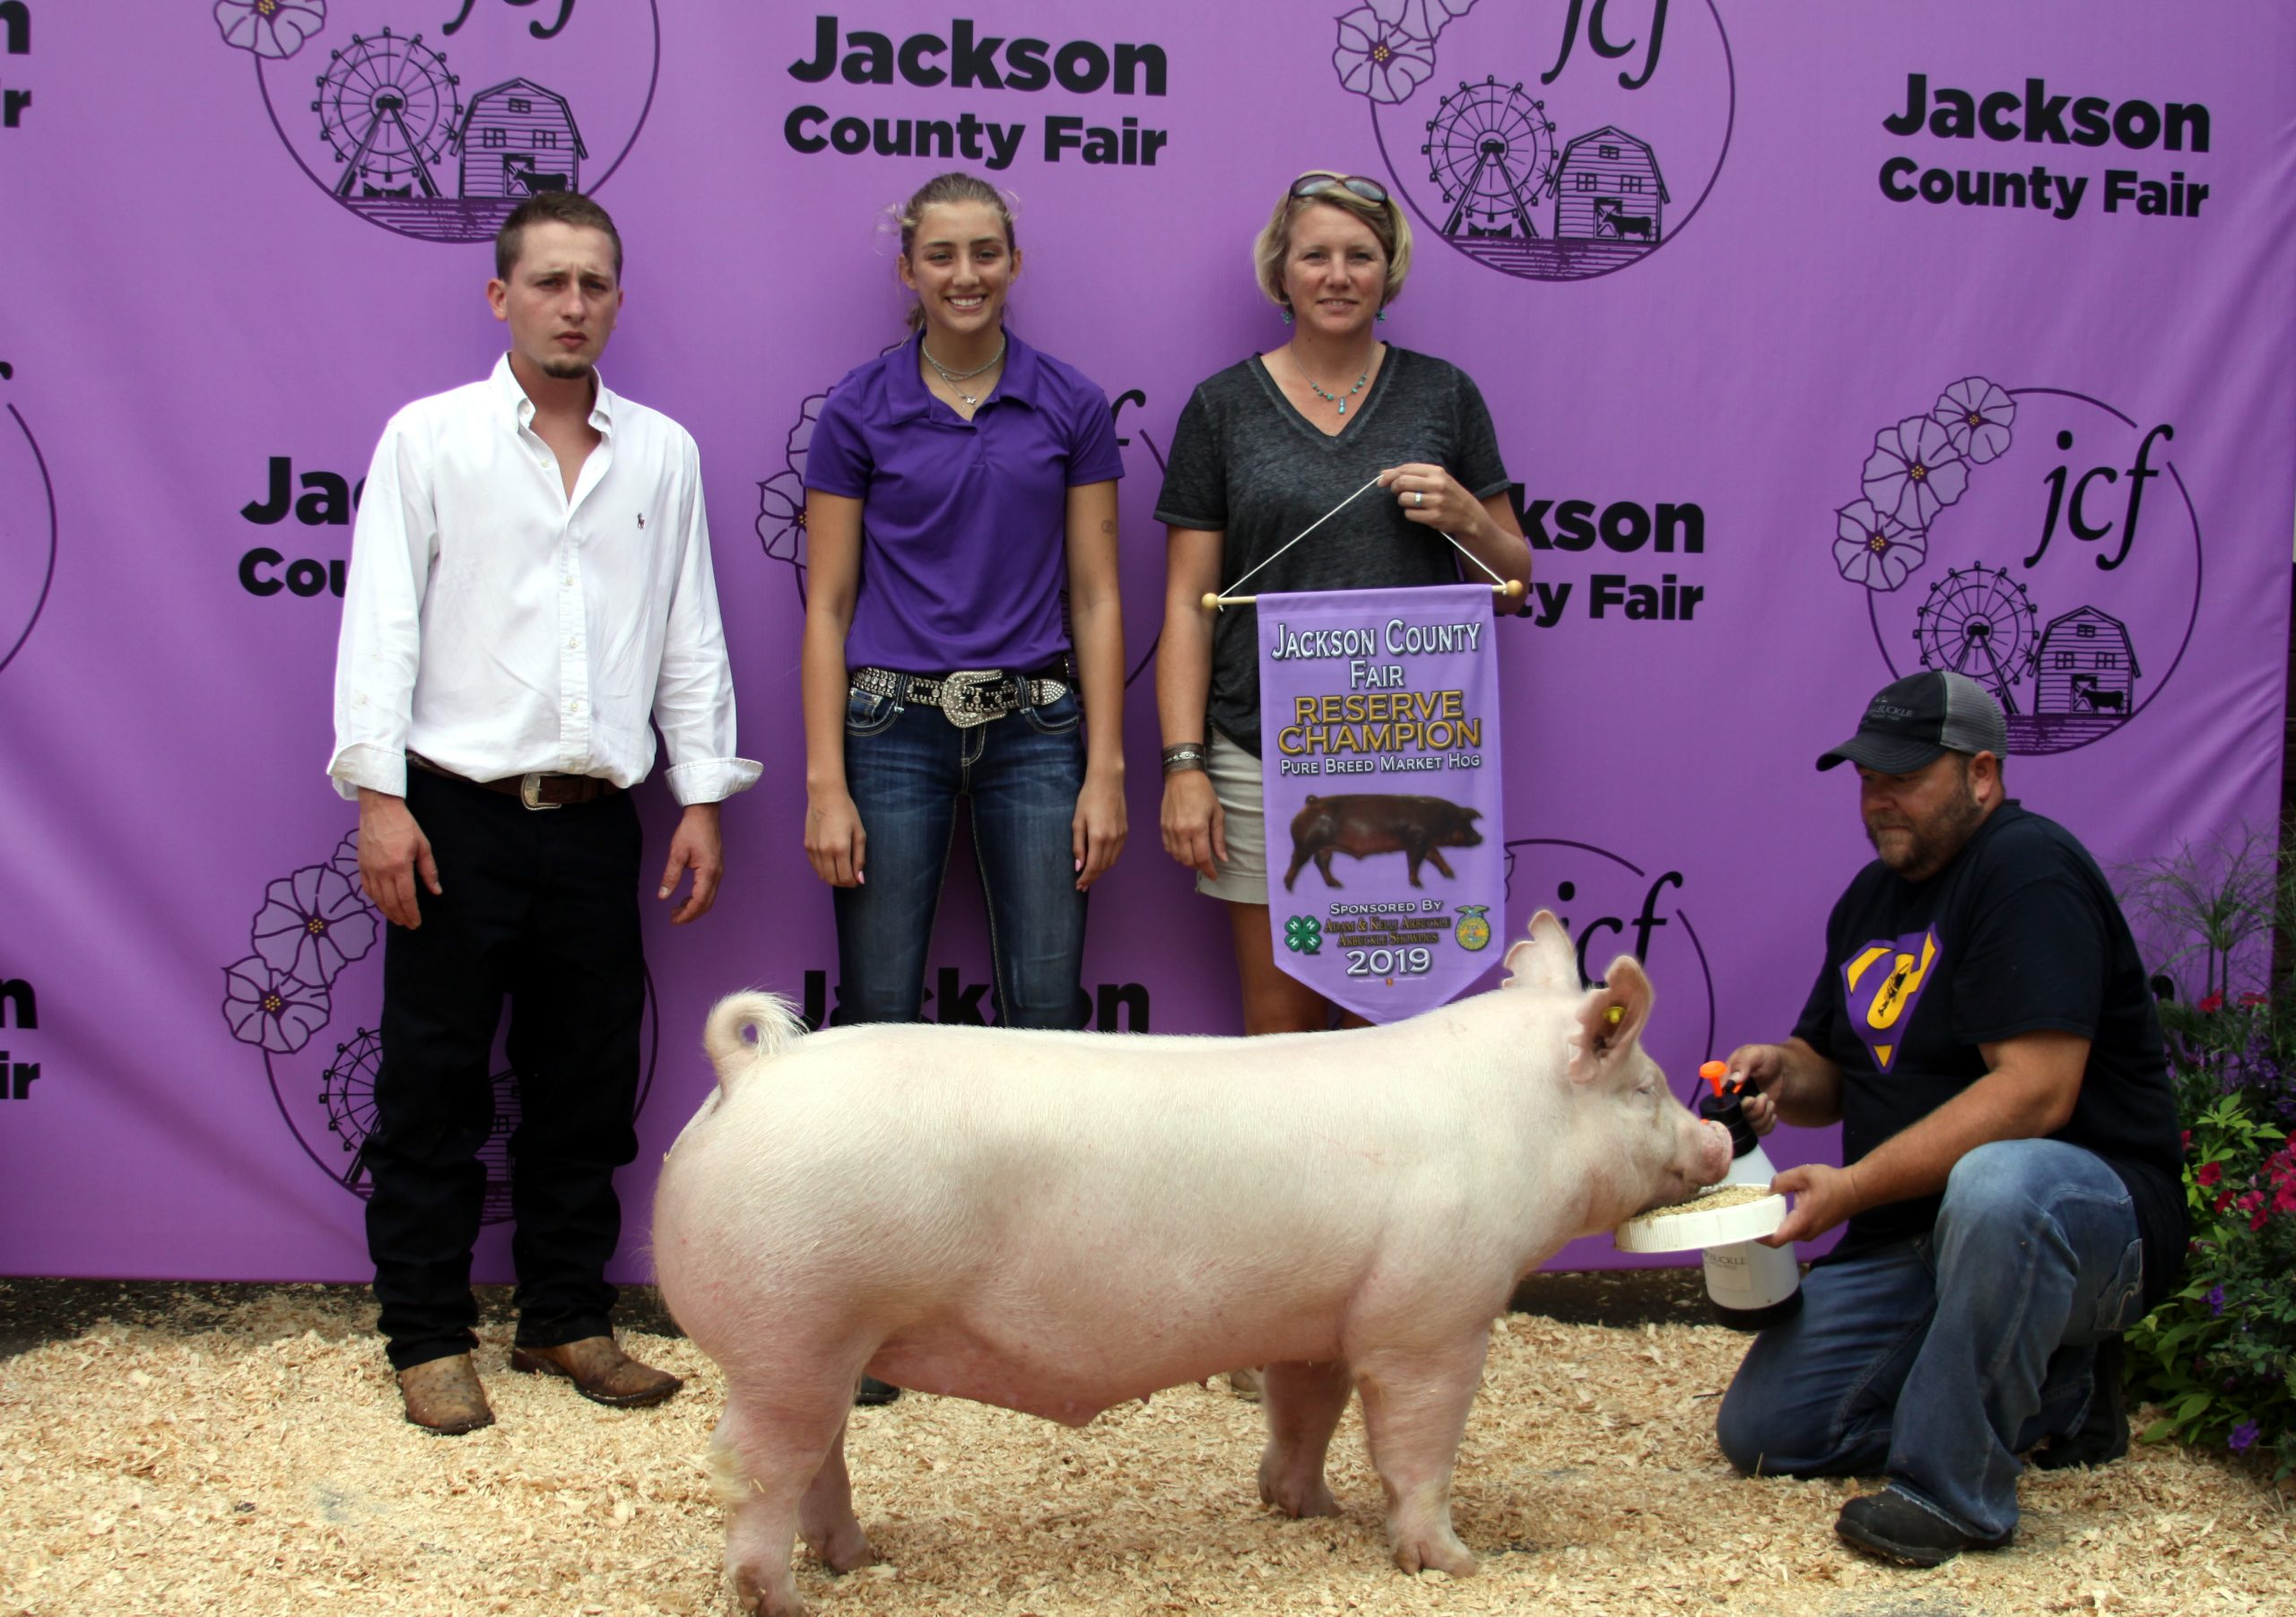 Jackson County Fair,Champion York, Reserve Champion Purebred, Sired by Hand It Over